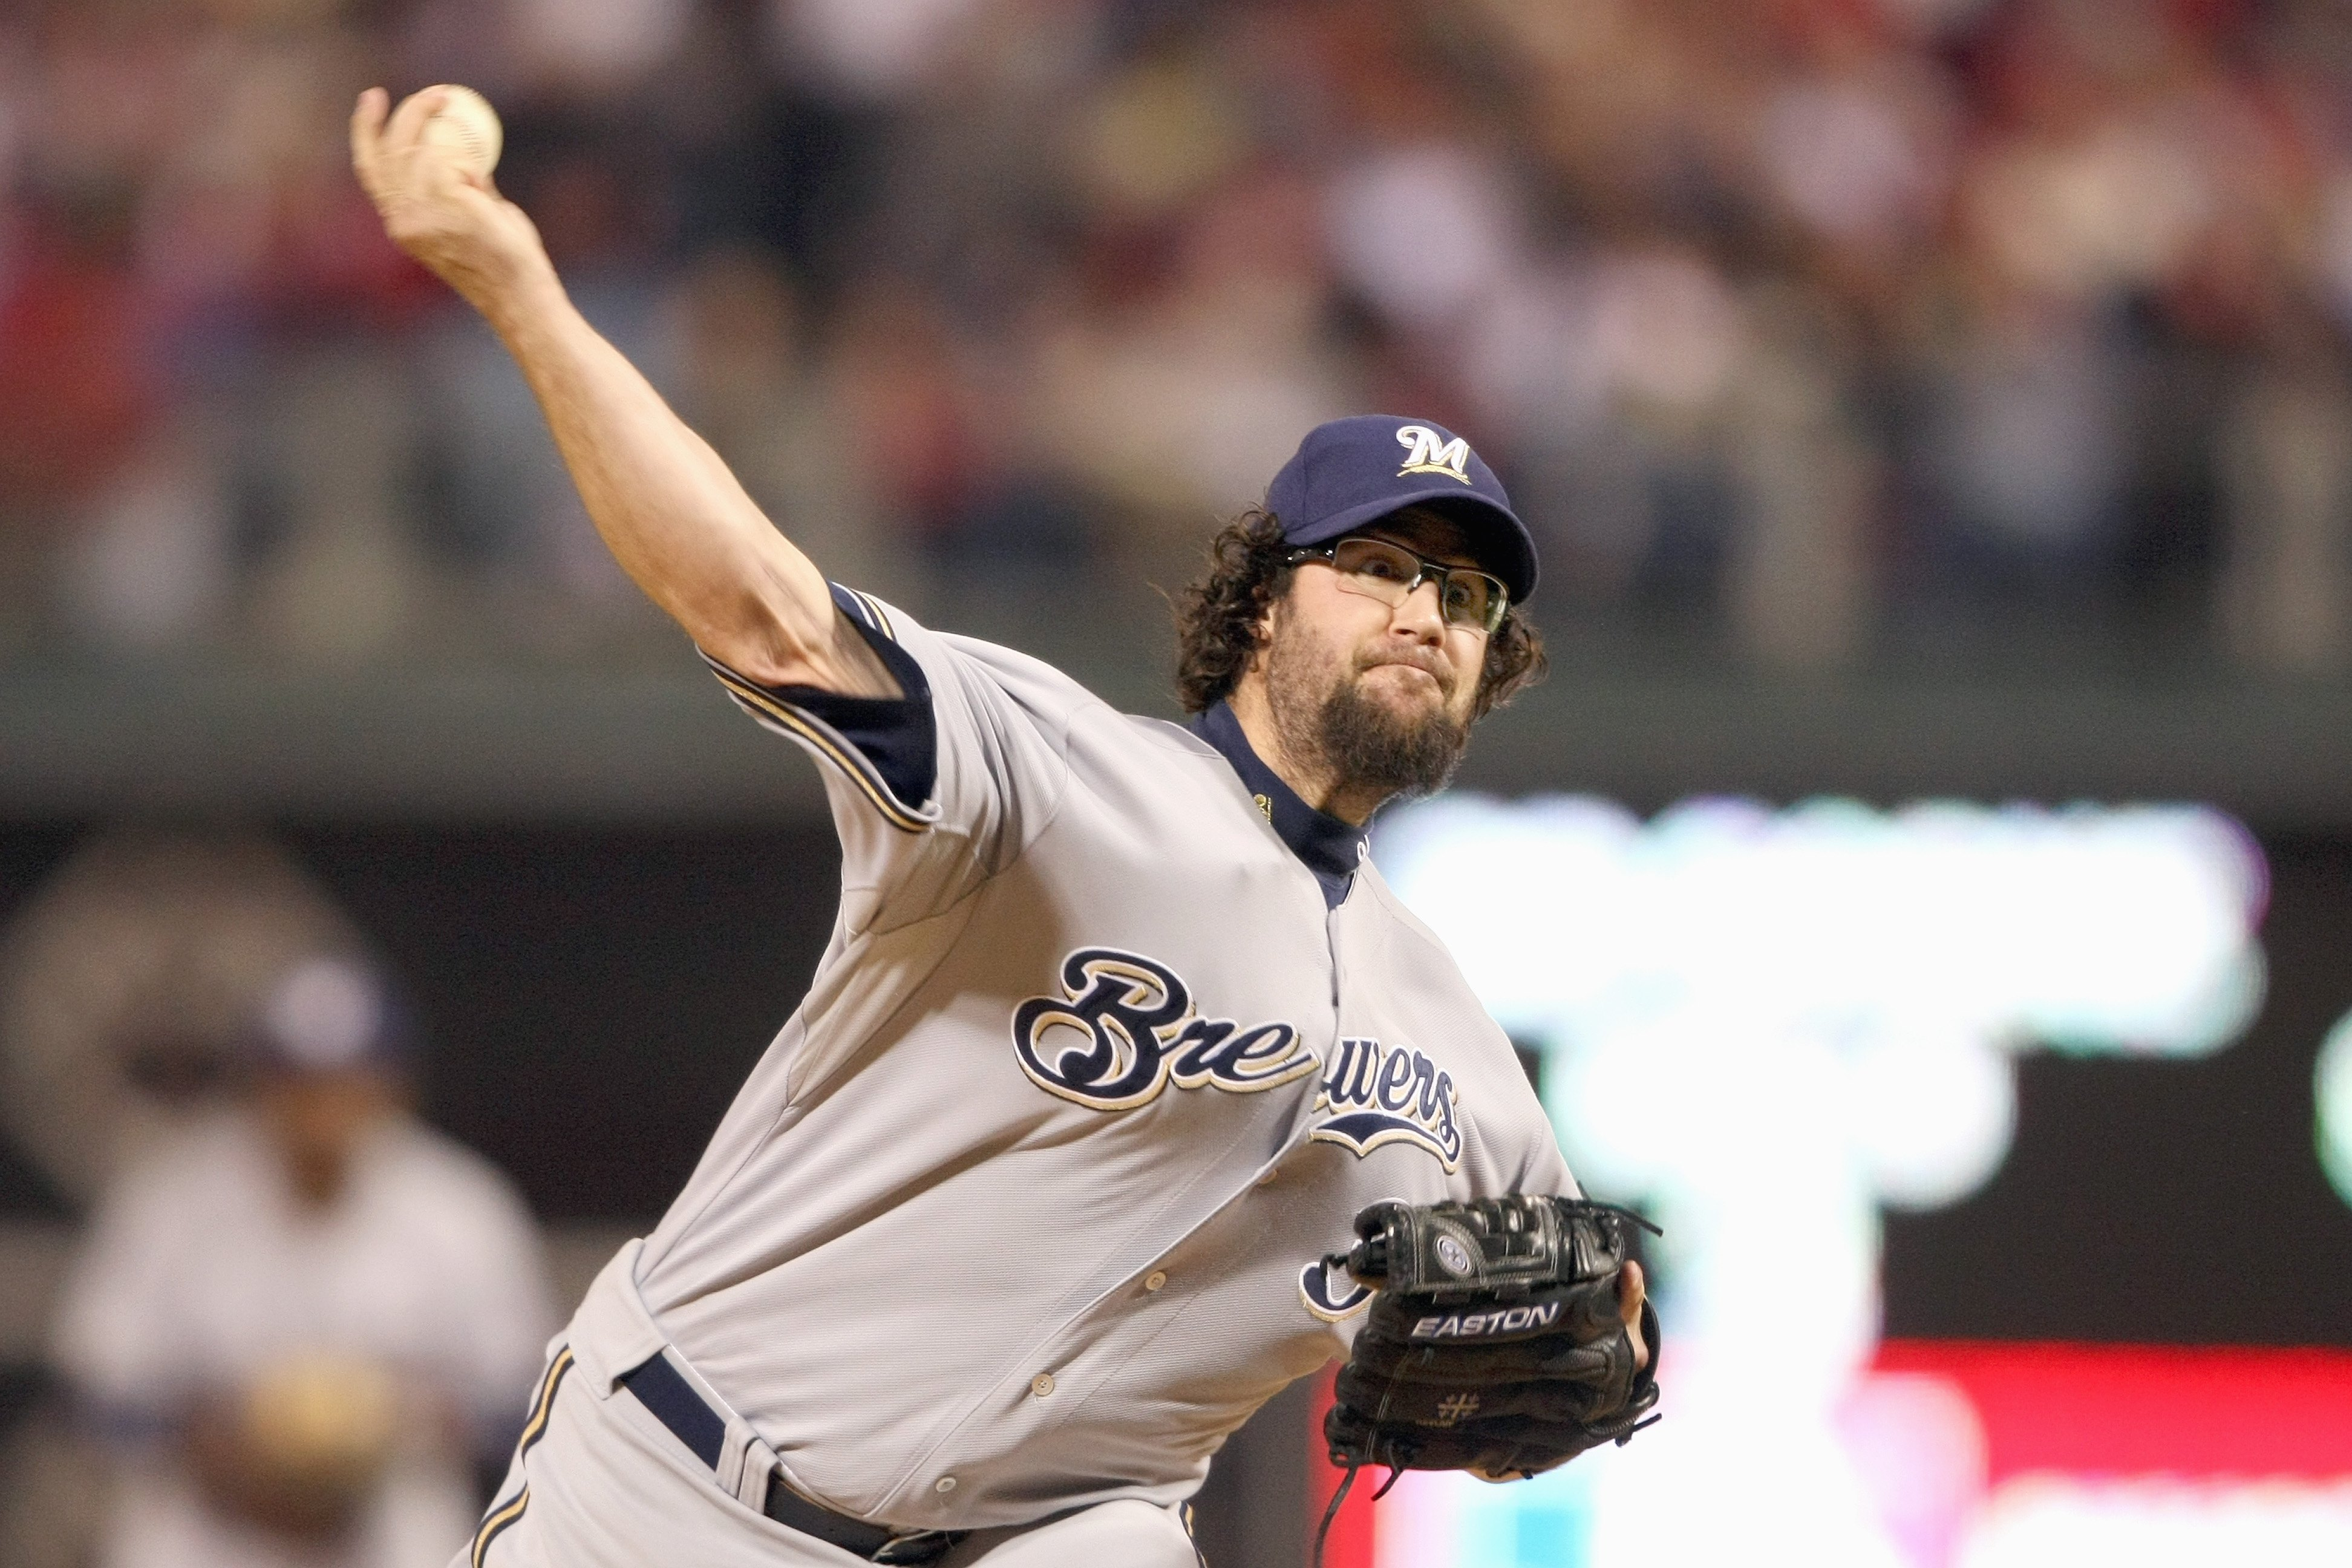 PHILADELPHIA - OCTOBER 2:  Eric Gagne #38 of the Milwaukee Brewers pitches against the Philadelphia Phillies during Game 2 of the NLDS Playoffs at Citizens Bank Ballpark on October 2, 2008 in Philadelphia, Pennsylvania. (Photo by: Nick Laham/Getty Images)